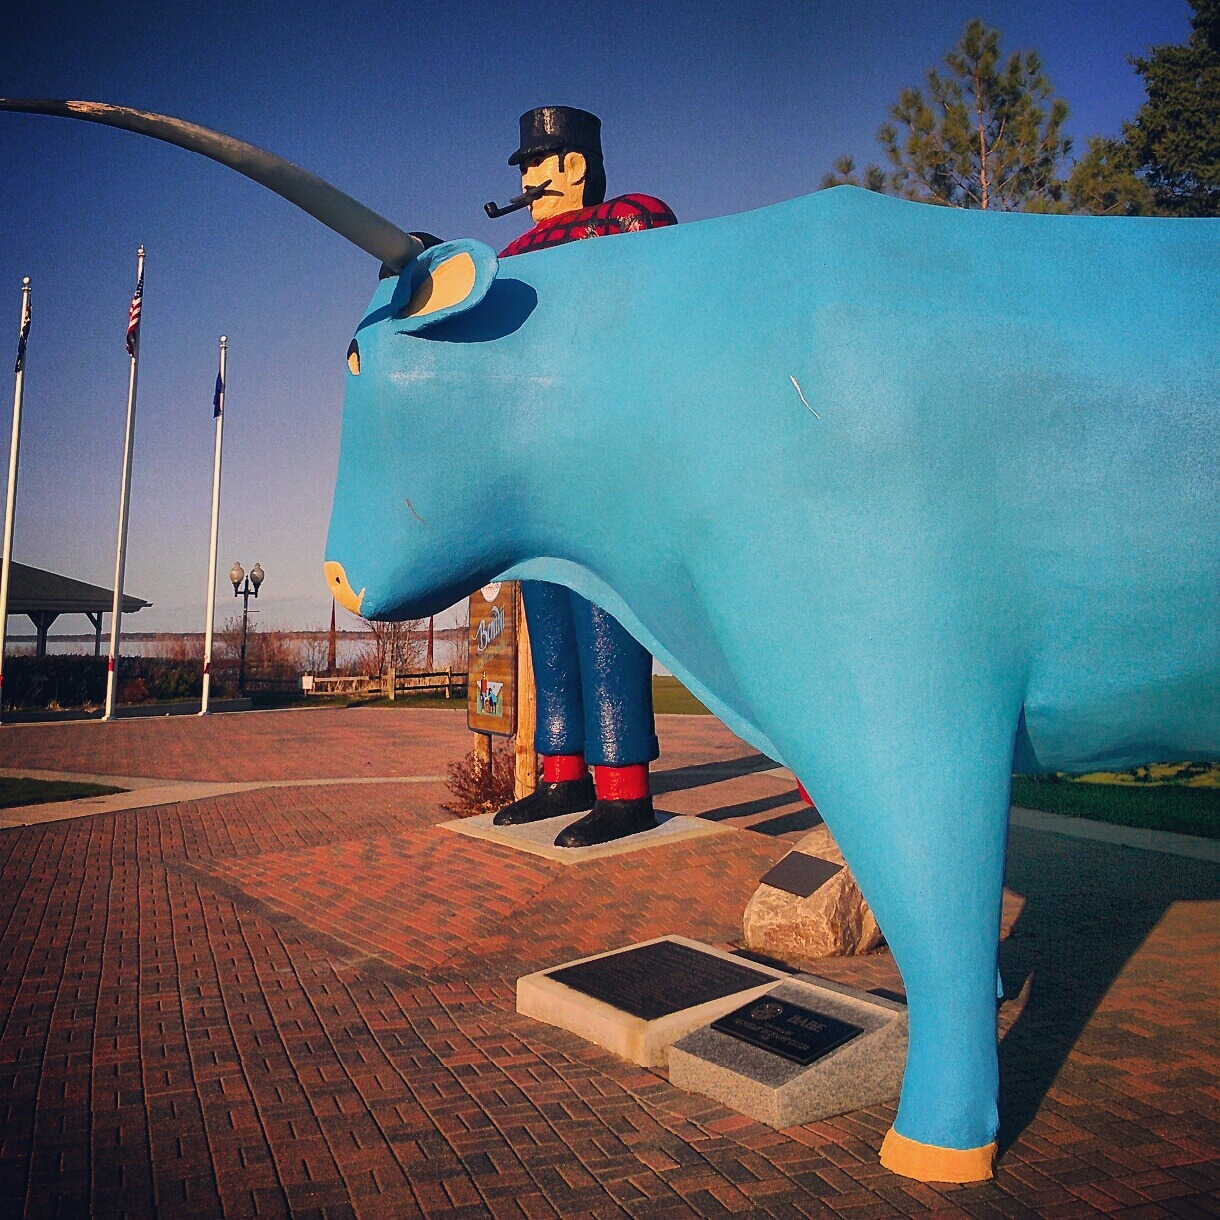 Paul Bunyan and Babe the Blue Ox.